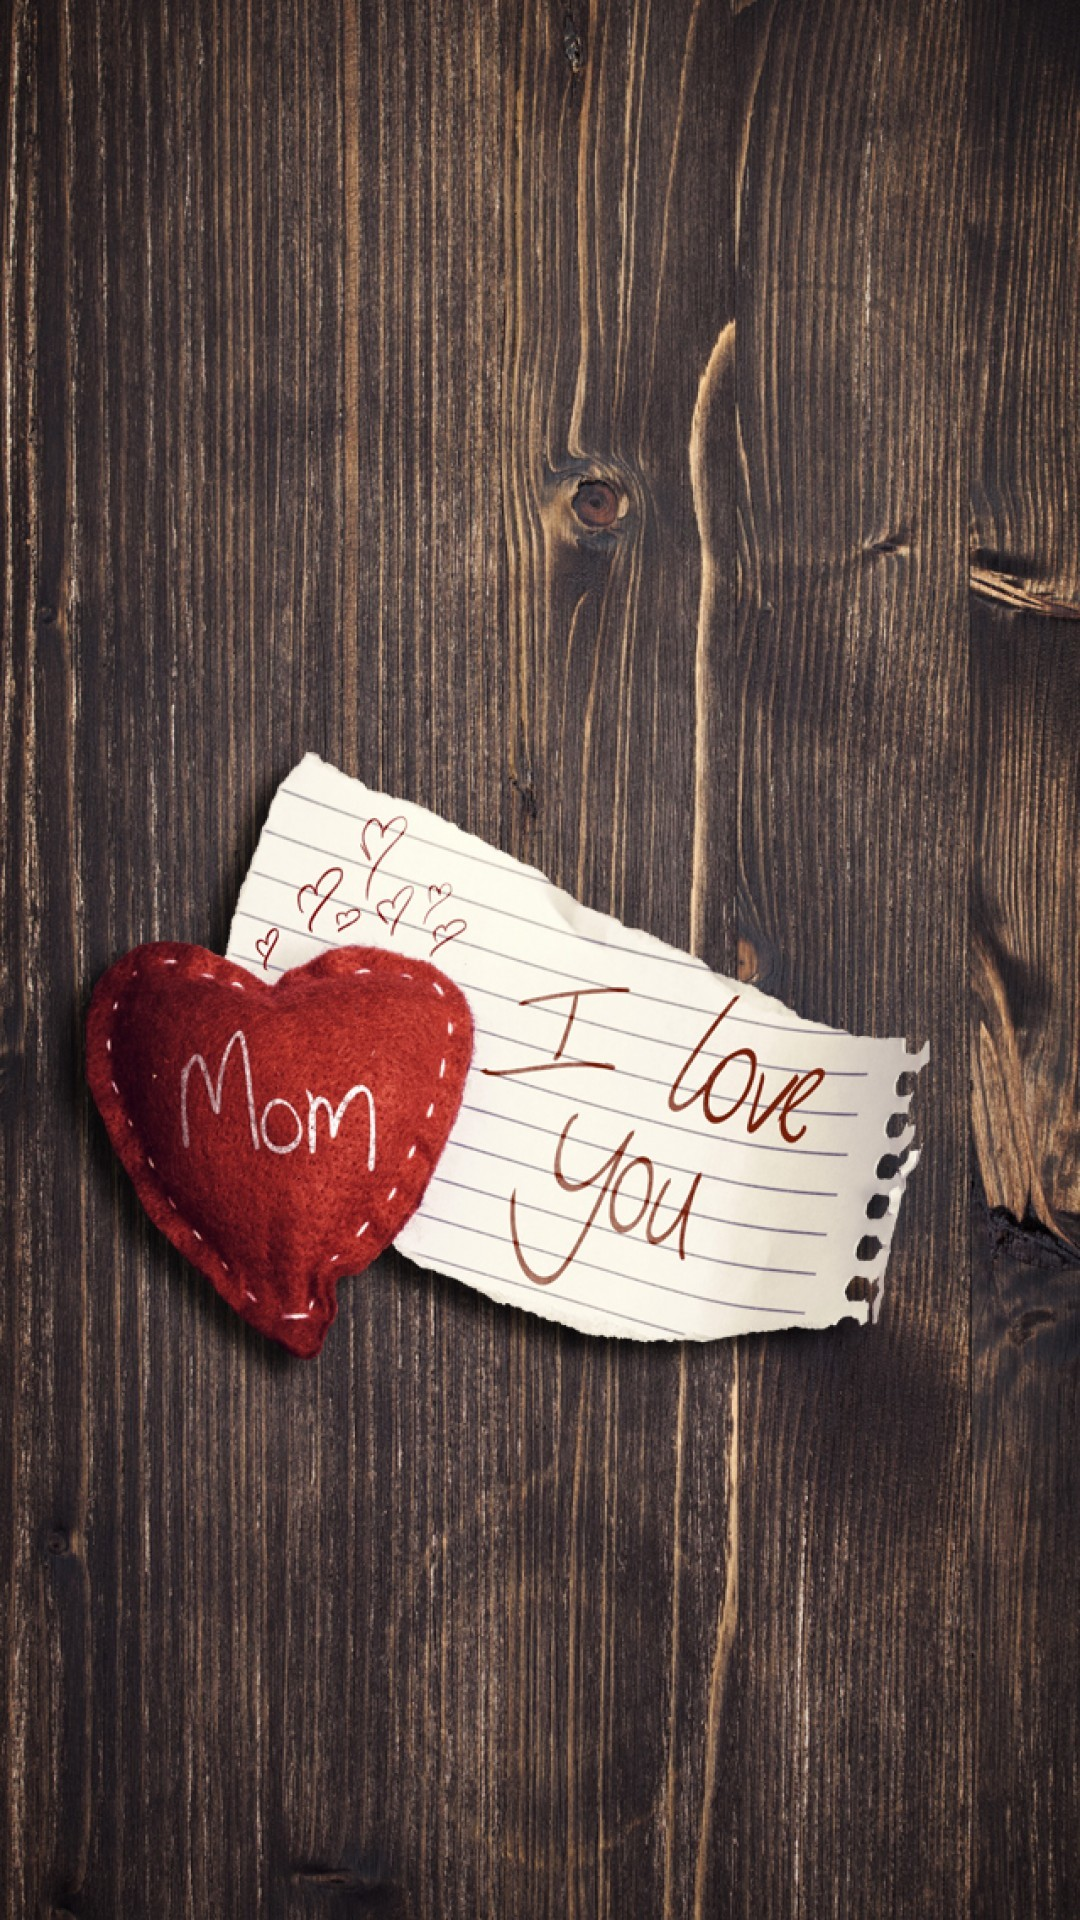 I Love You Wallpapers For Iphone 4 : I Love You Mom Wallpaper (61+ images)